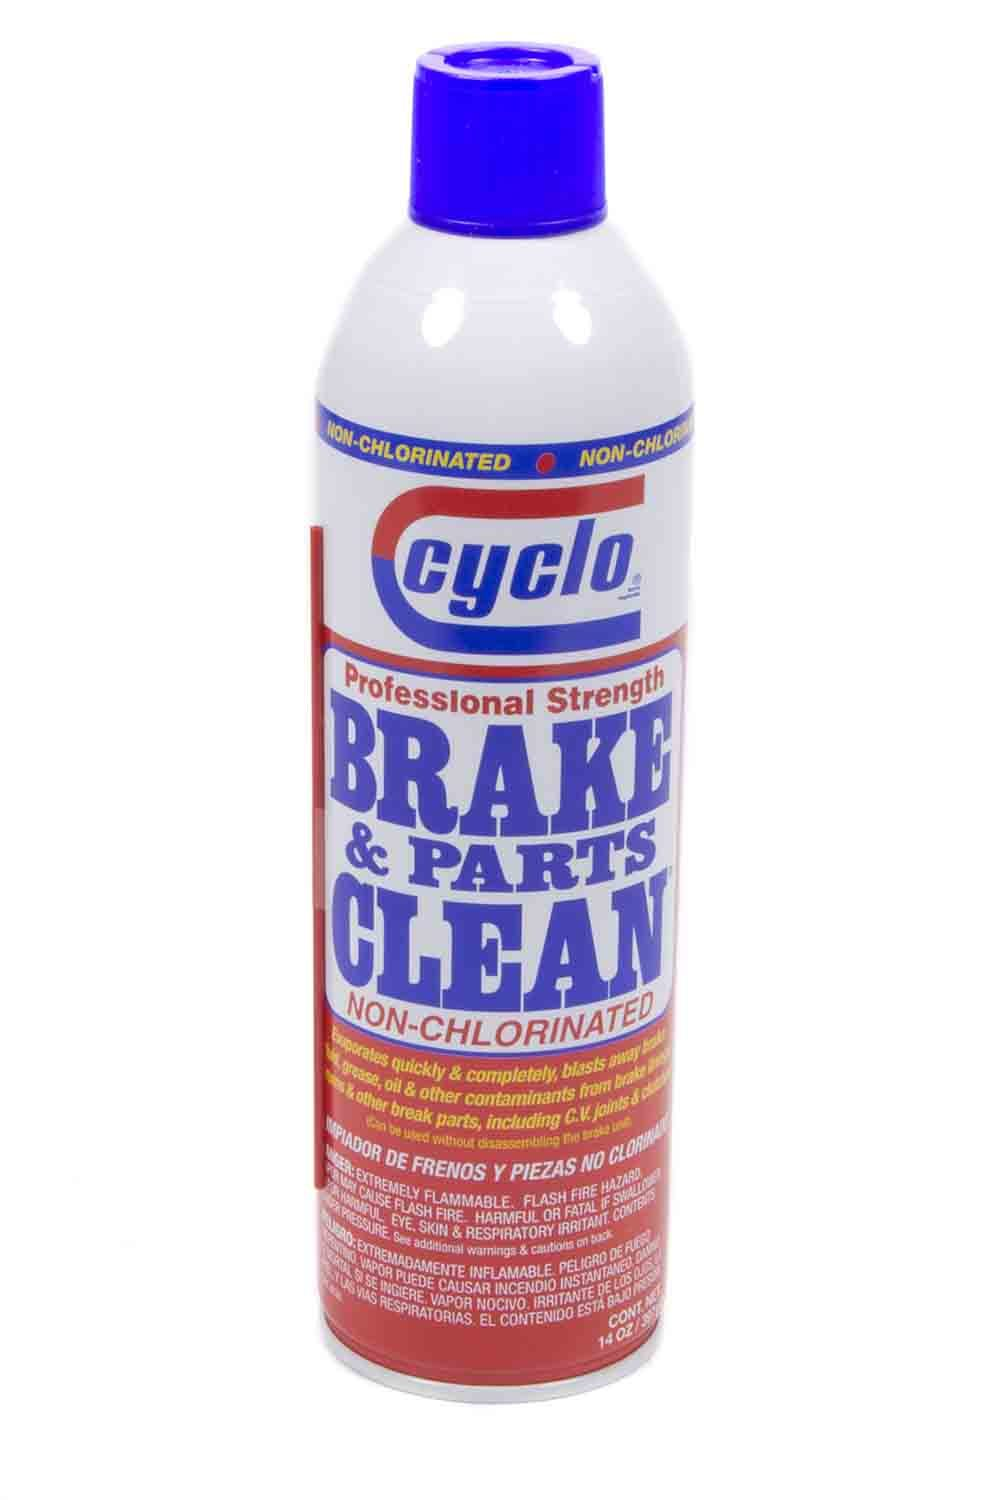 Clyco C111C Brake Cleaner, Brake and Parts Clean, Non-Chlorinated, 14.00 oz Aerosol, Each